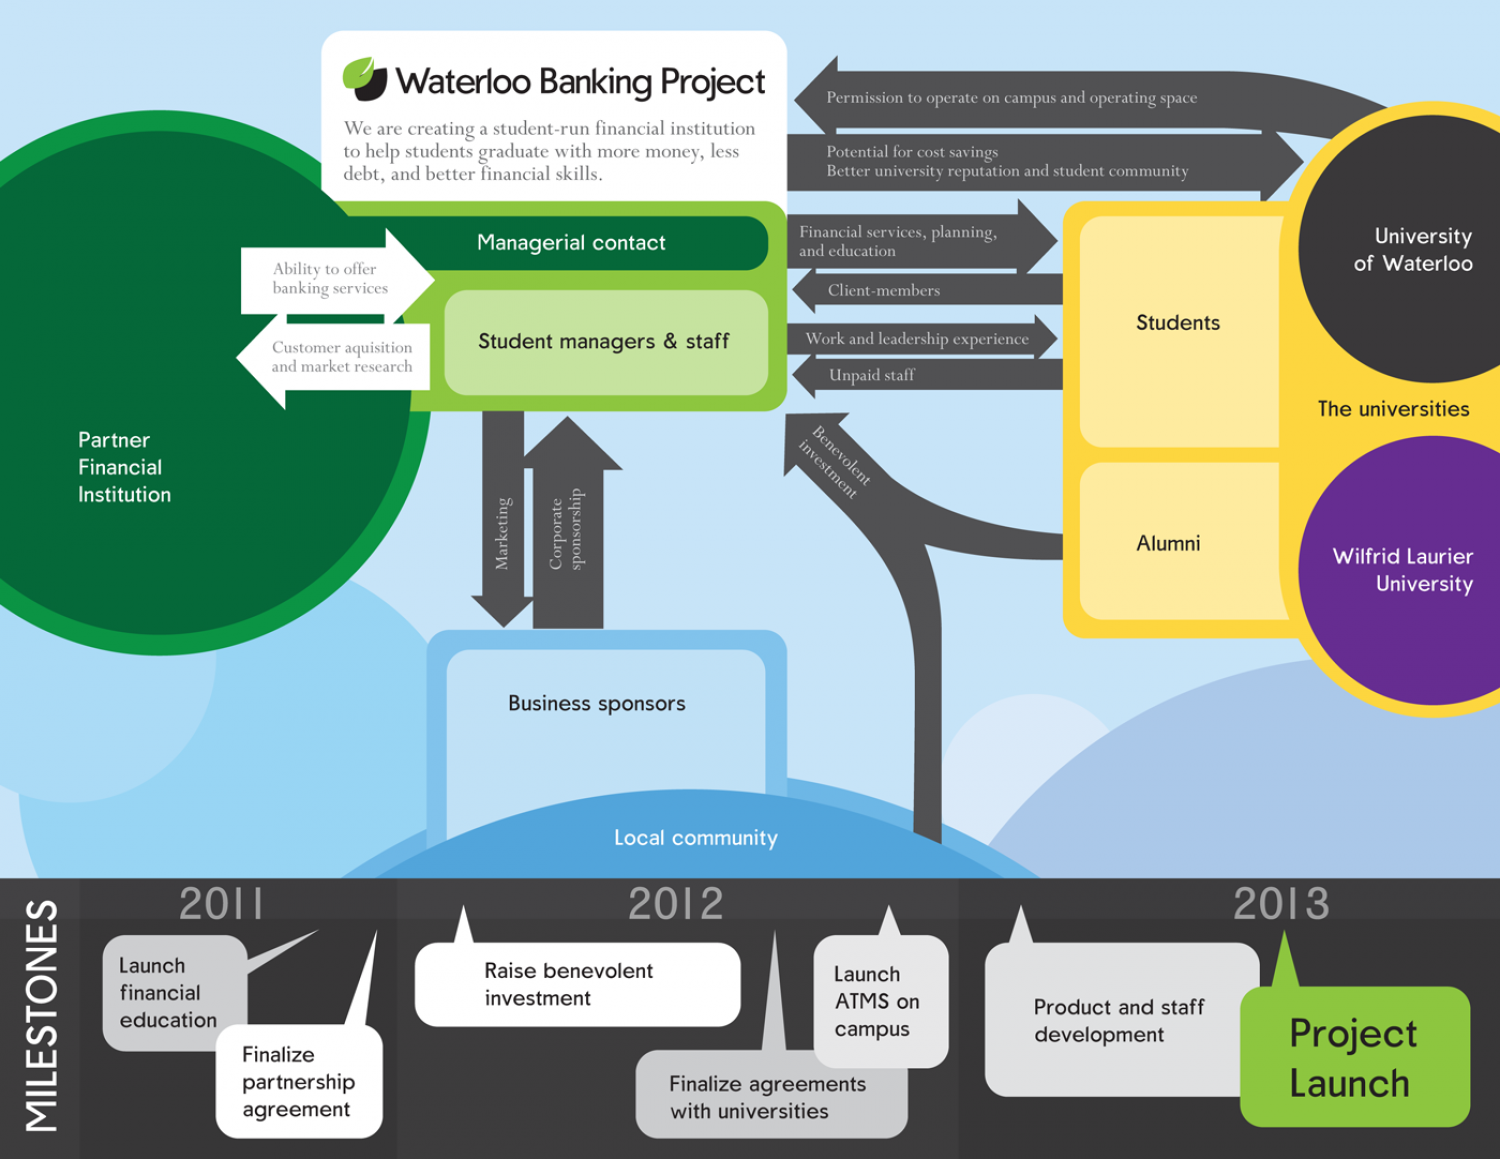 Waterloo Banking Project Business Model Infographic